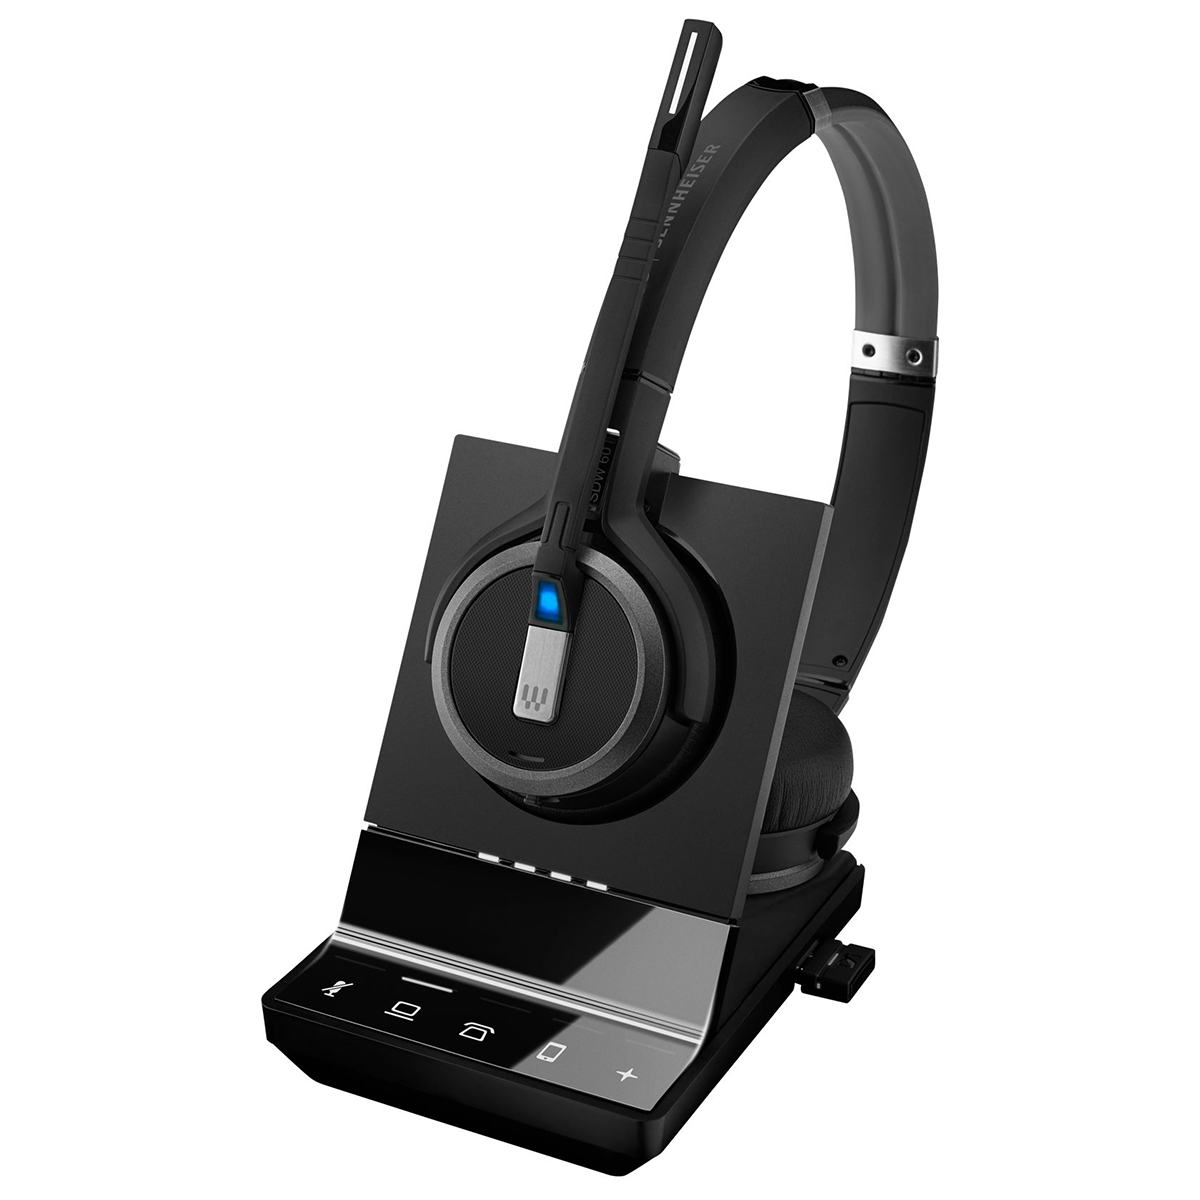 EPOS Sennheiser IMPACT SDW 5065 Wireless 3 in 1 Headset and Base